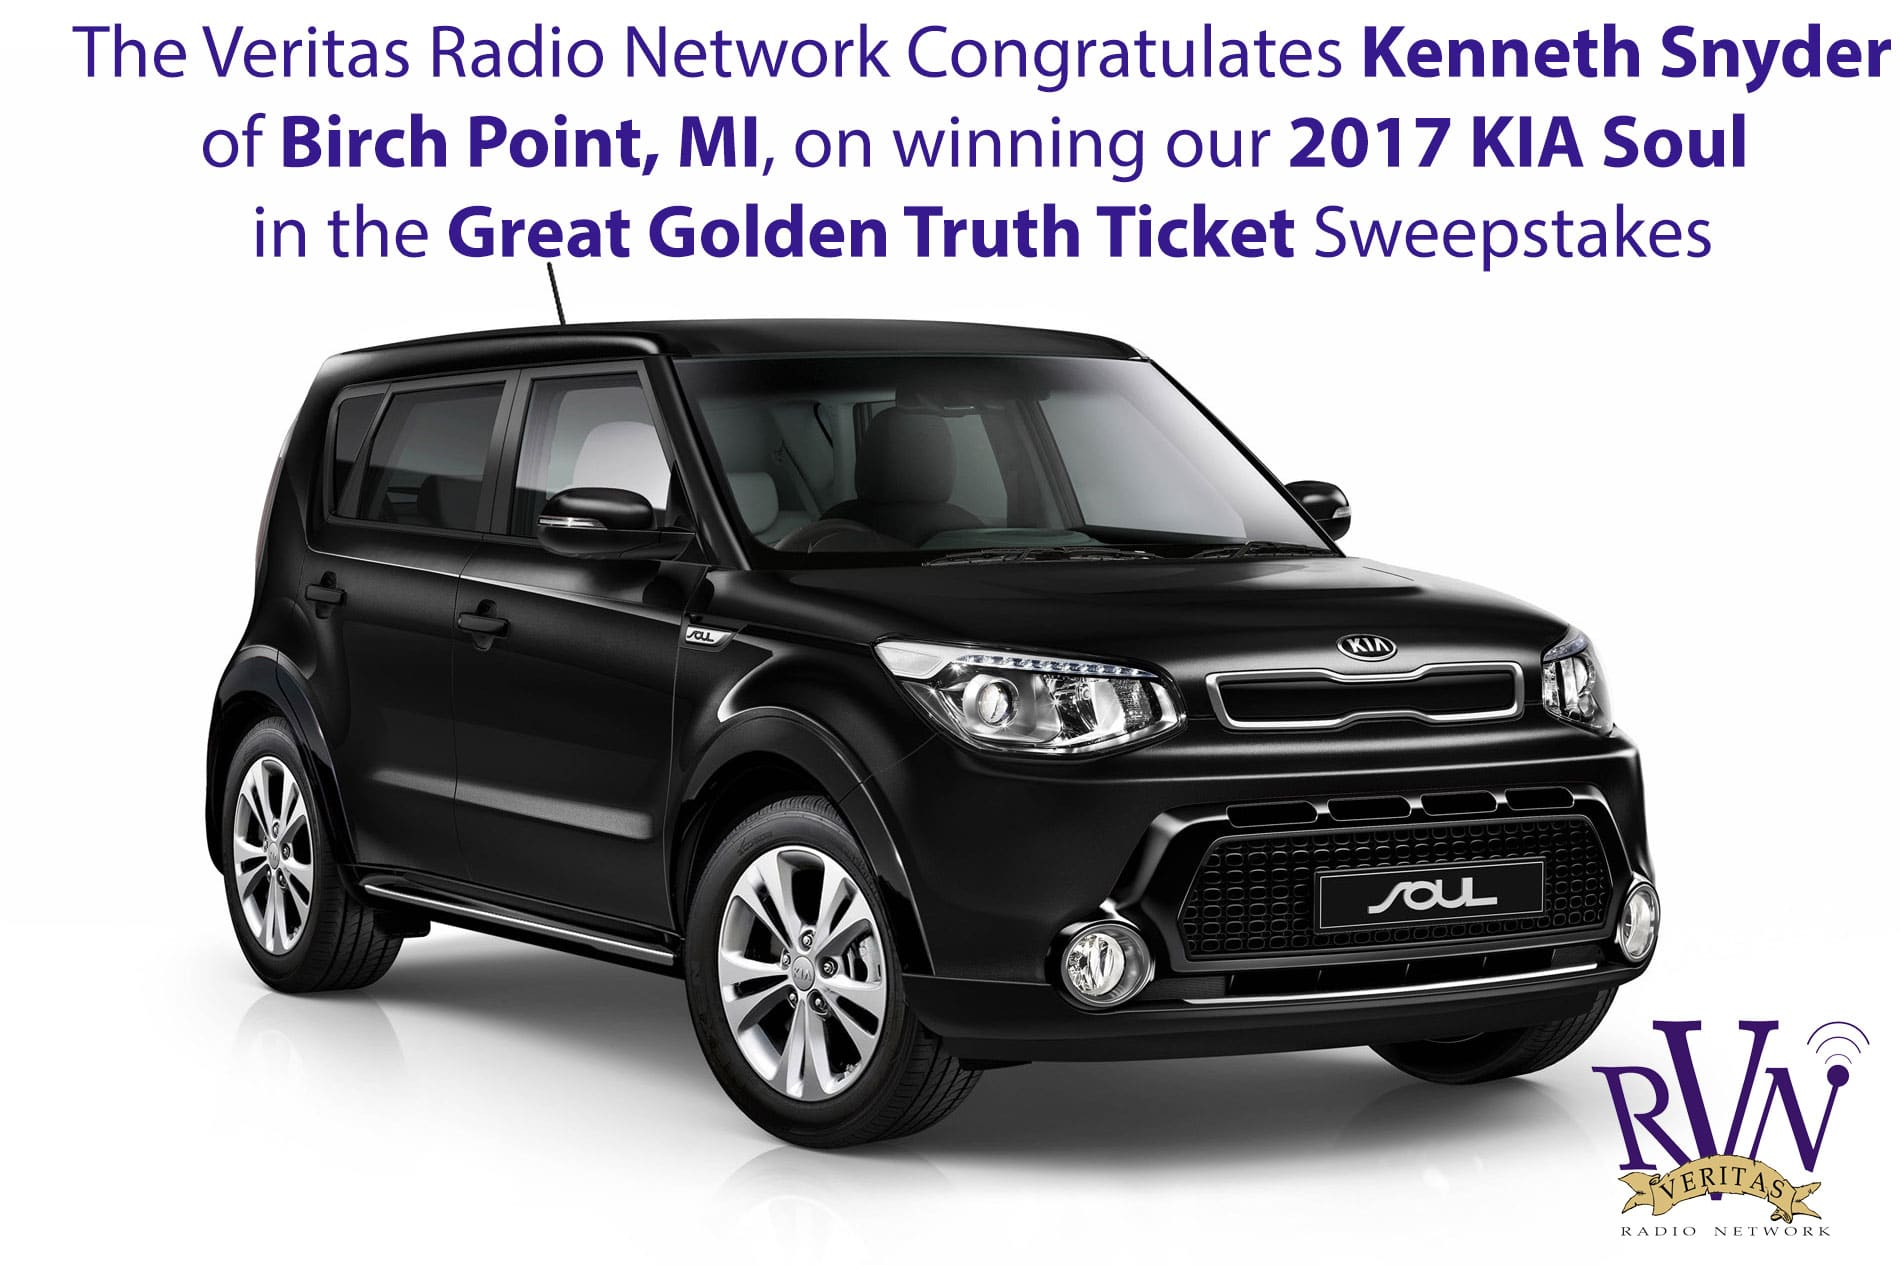 kia-soul-winner_kenneth_snyder